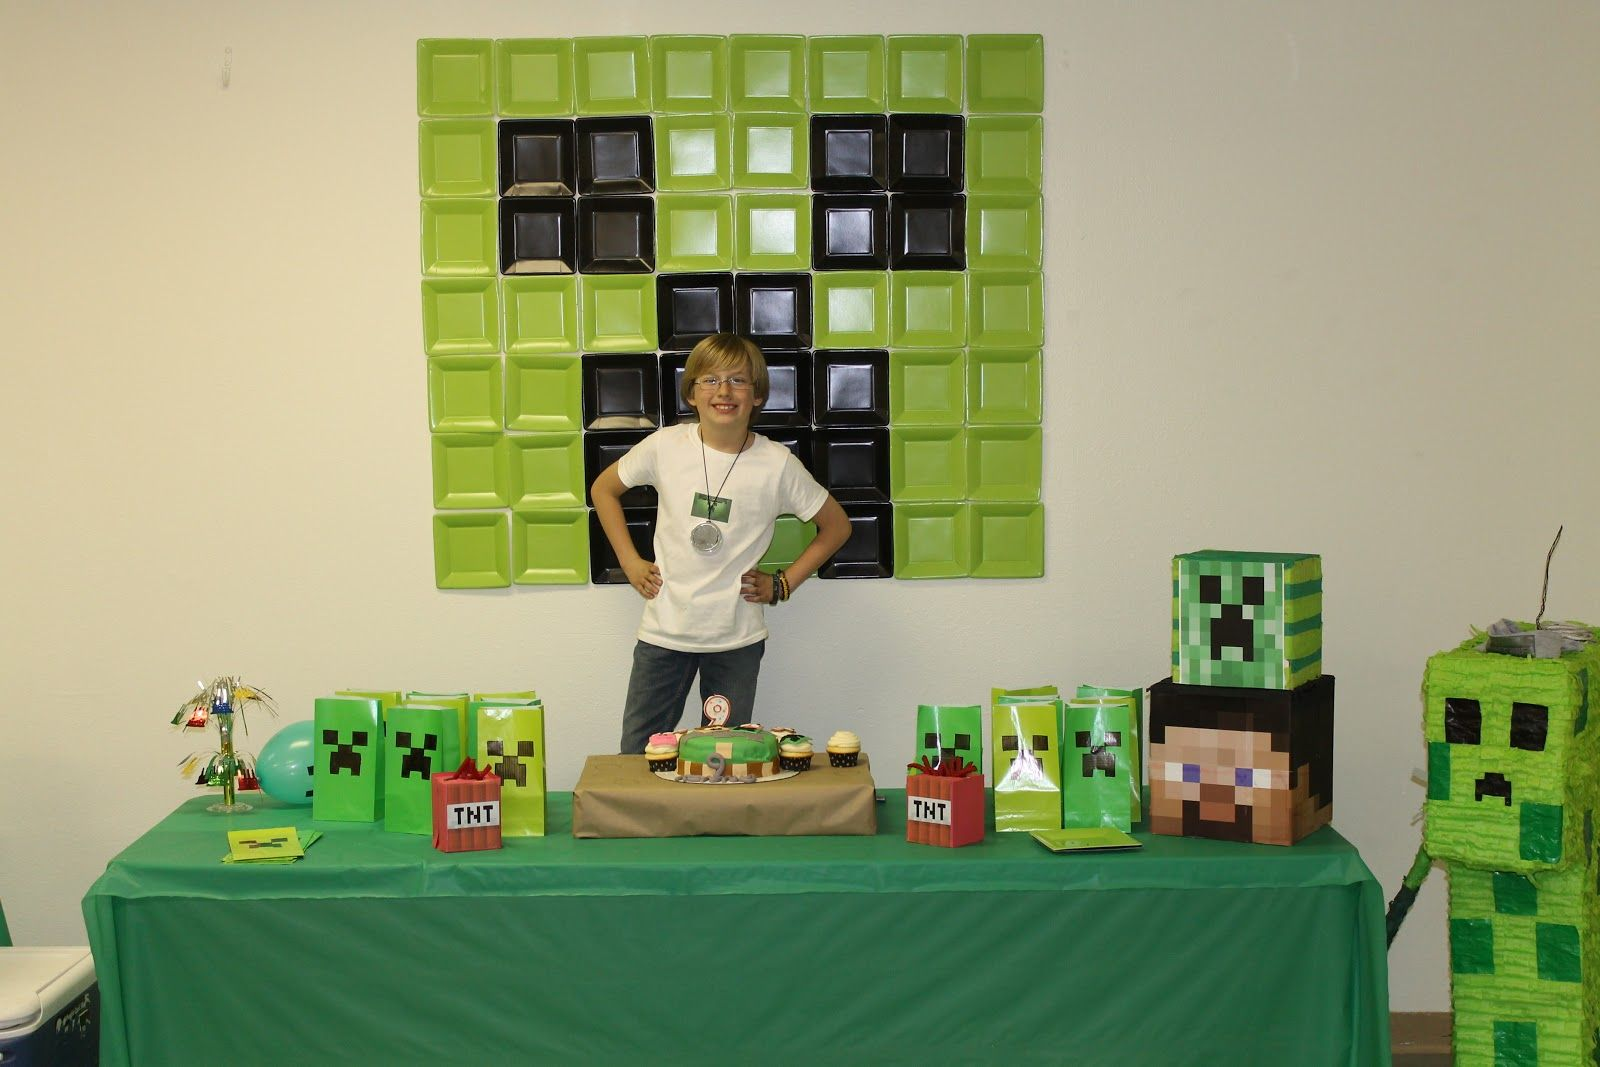 Creeper face with square plates minecraft birthday